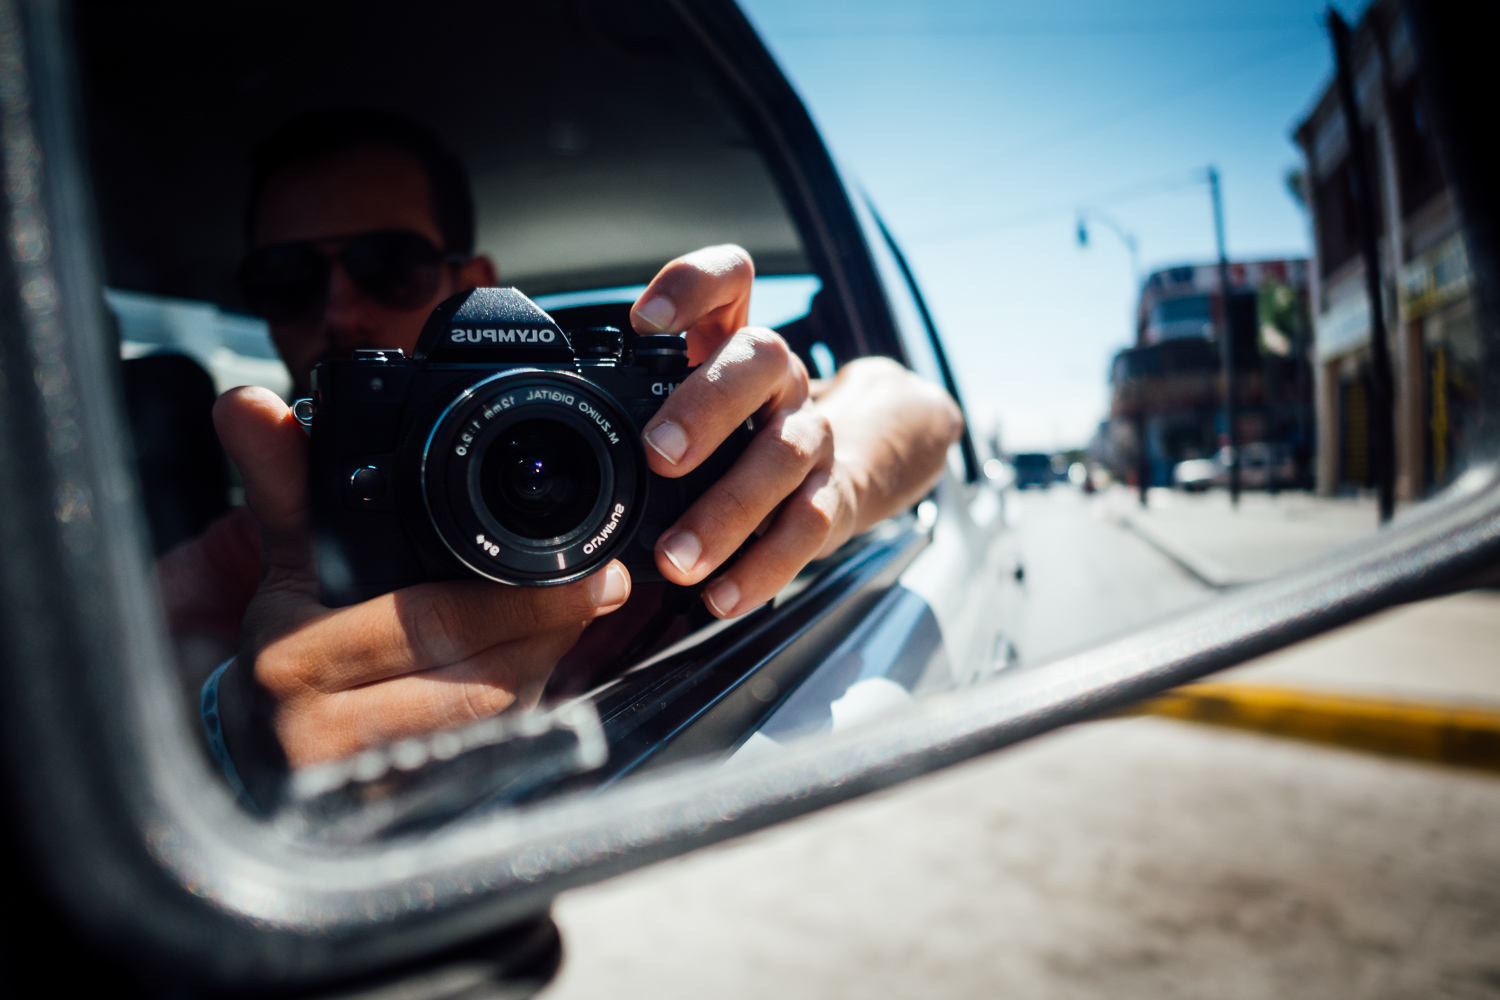 Mirror-Reflection-Photography-Camera-Equipment-Gear-Advice.jpg